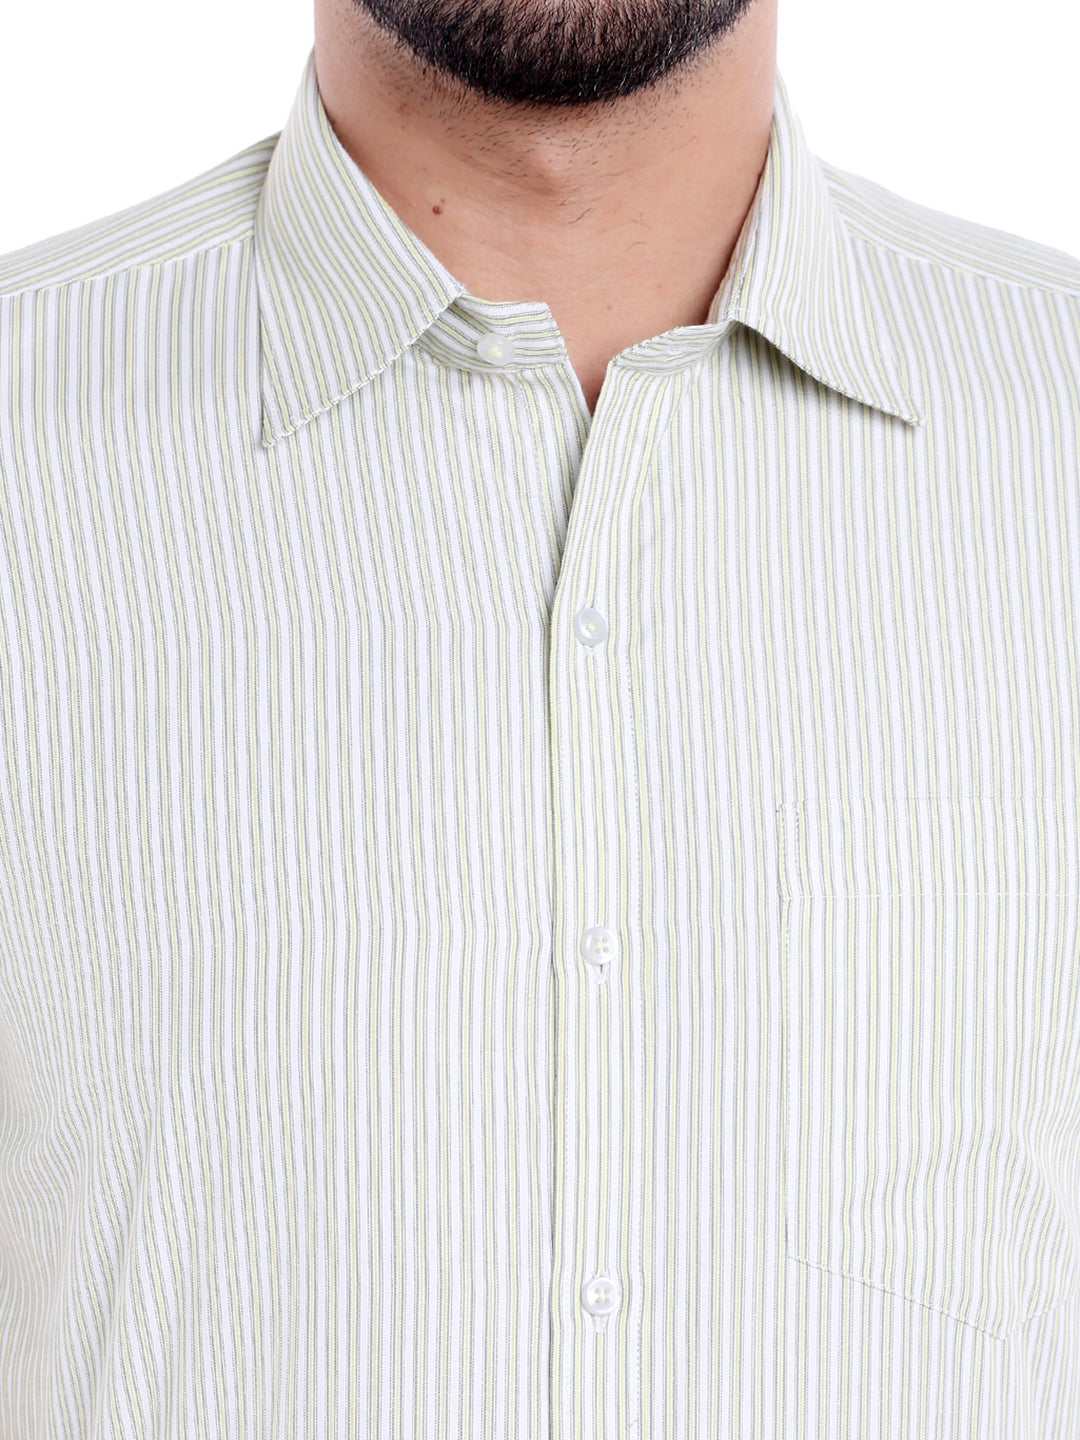 ZIDO Blended Striped Shirt for Men's SH5141